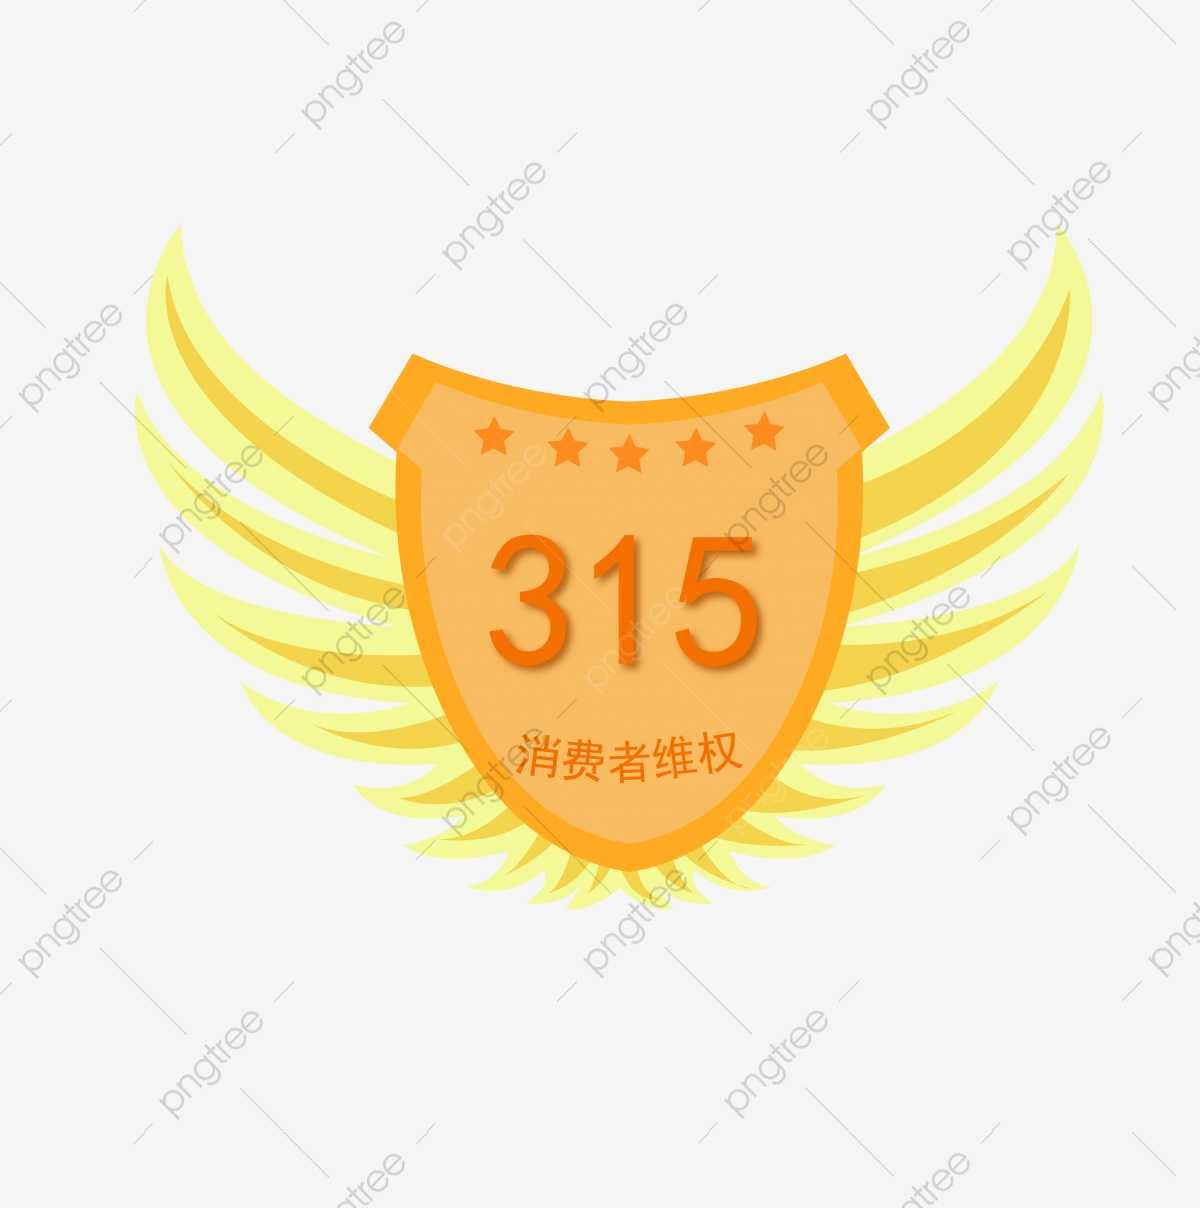 Honor Certificate Demony Promotion, Medal Template, Drawn Regarding Promotion Certificate Template